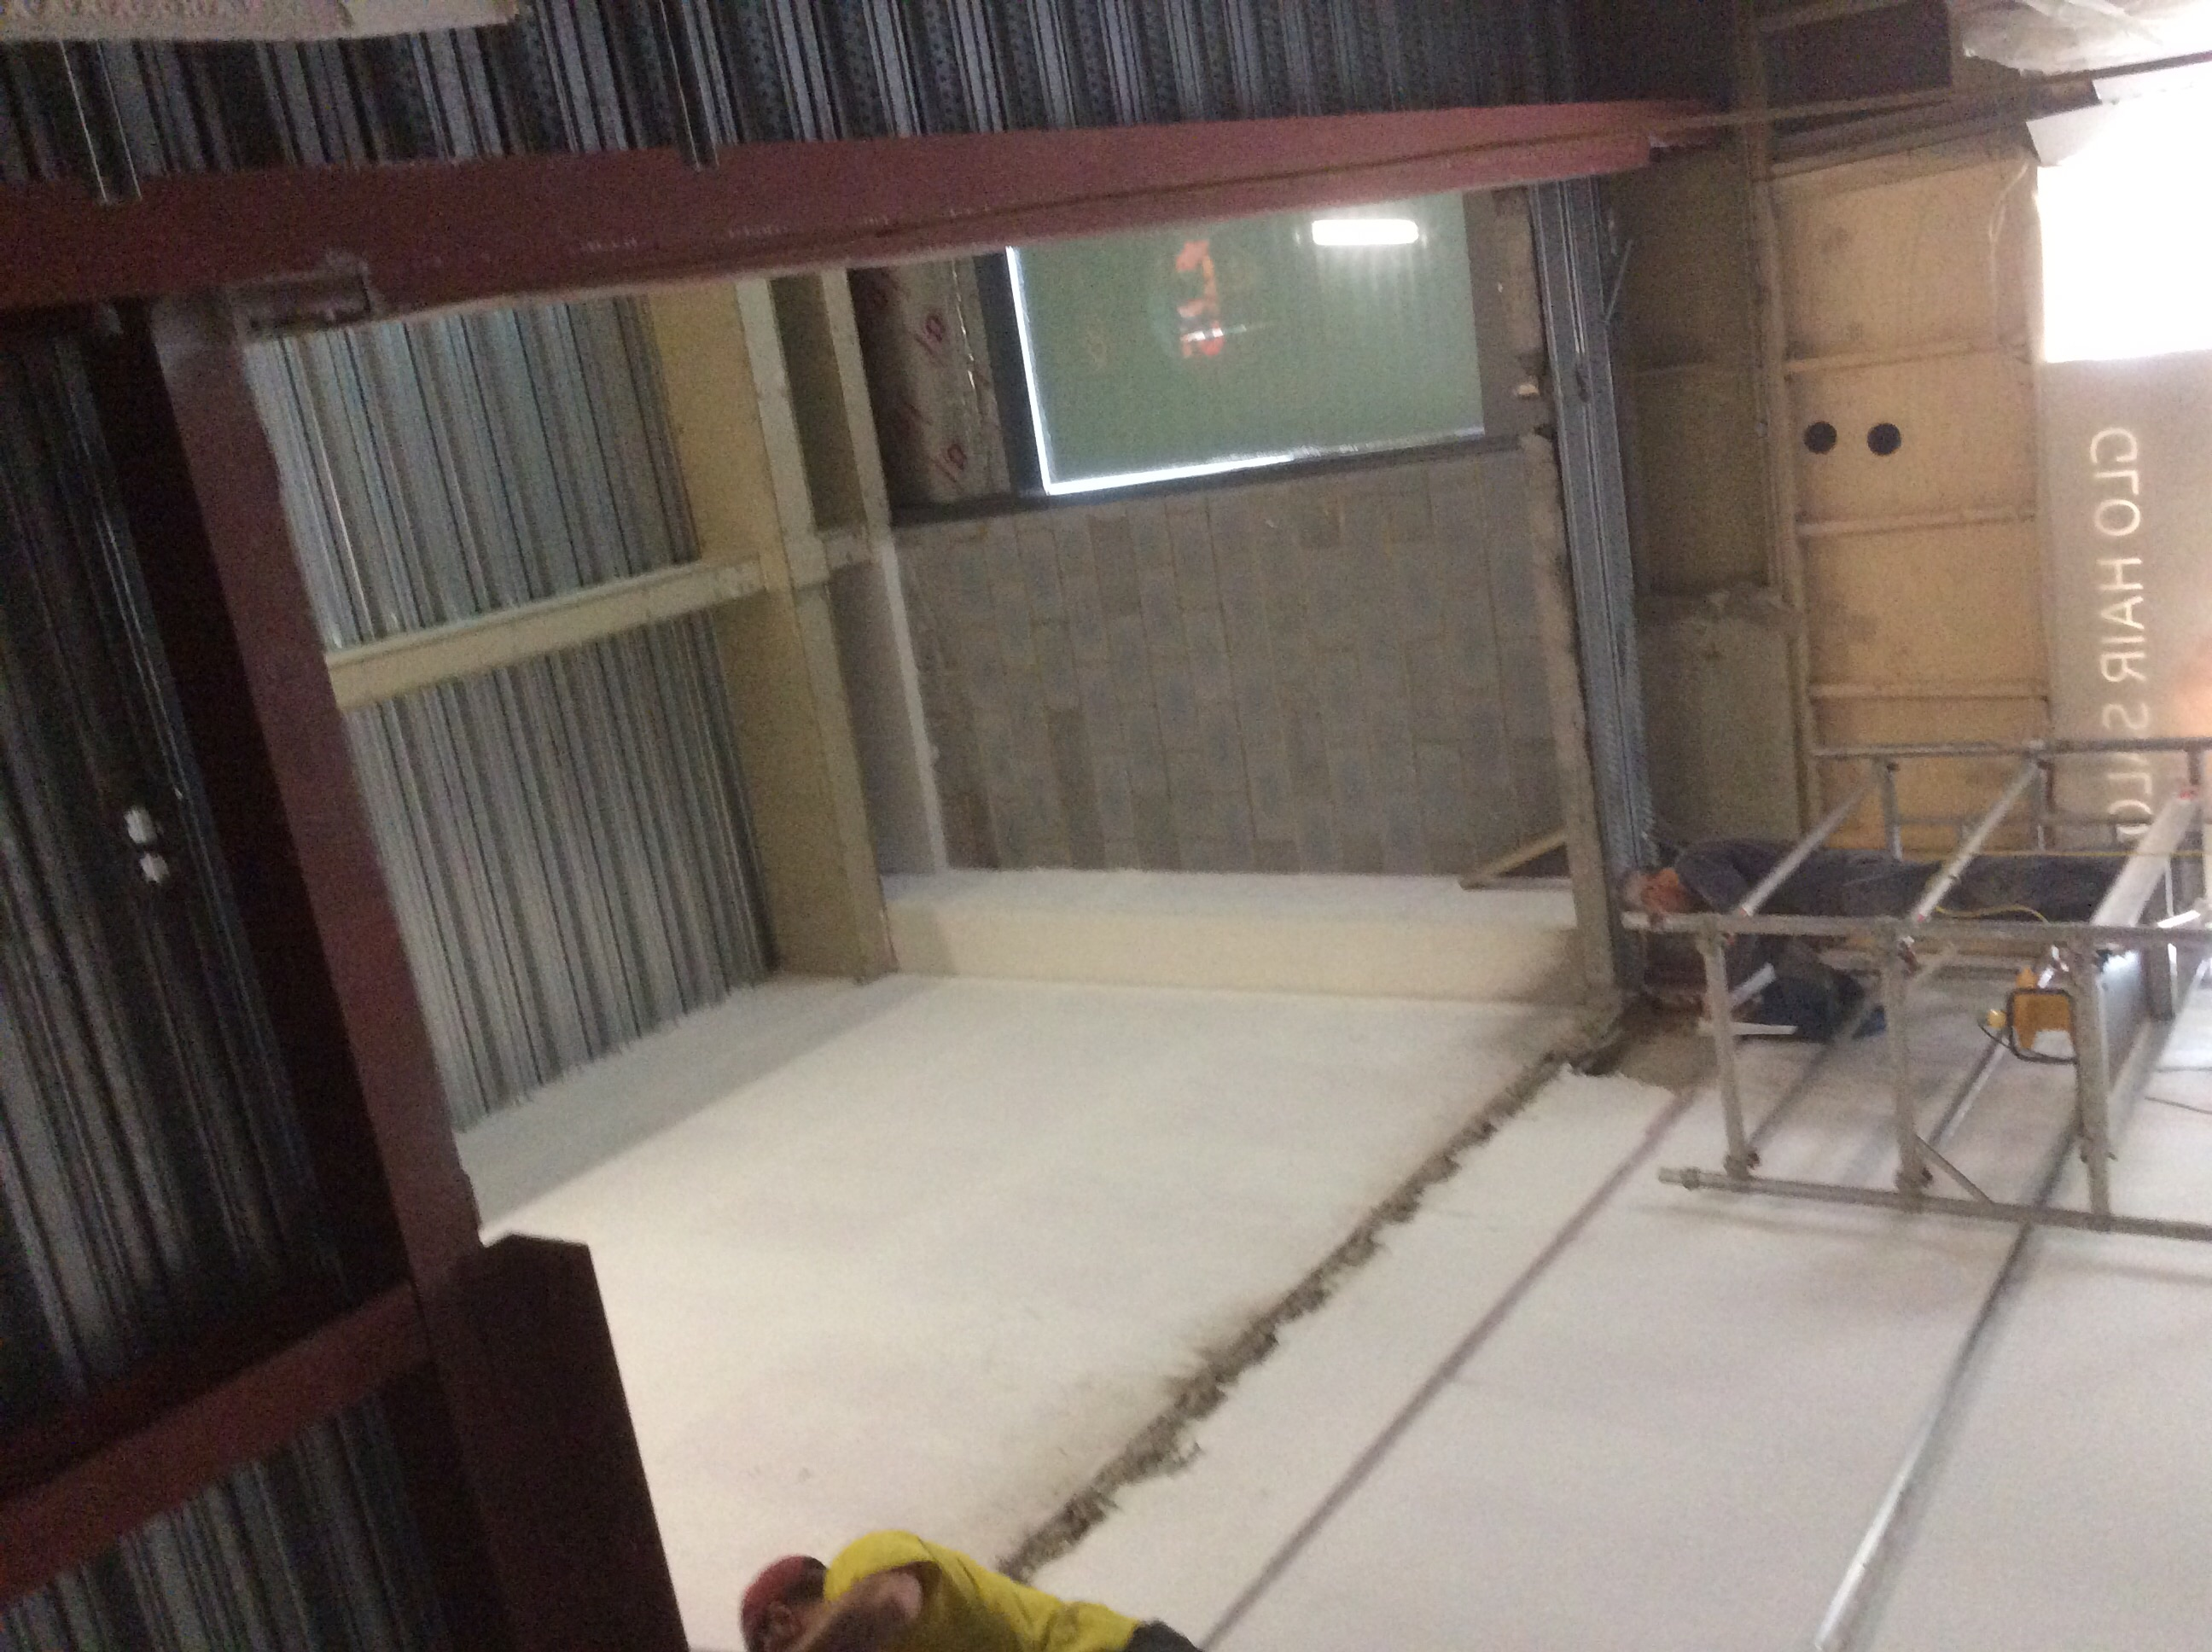 That's our new 40ft stairwell!